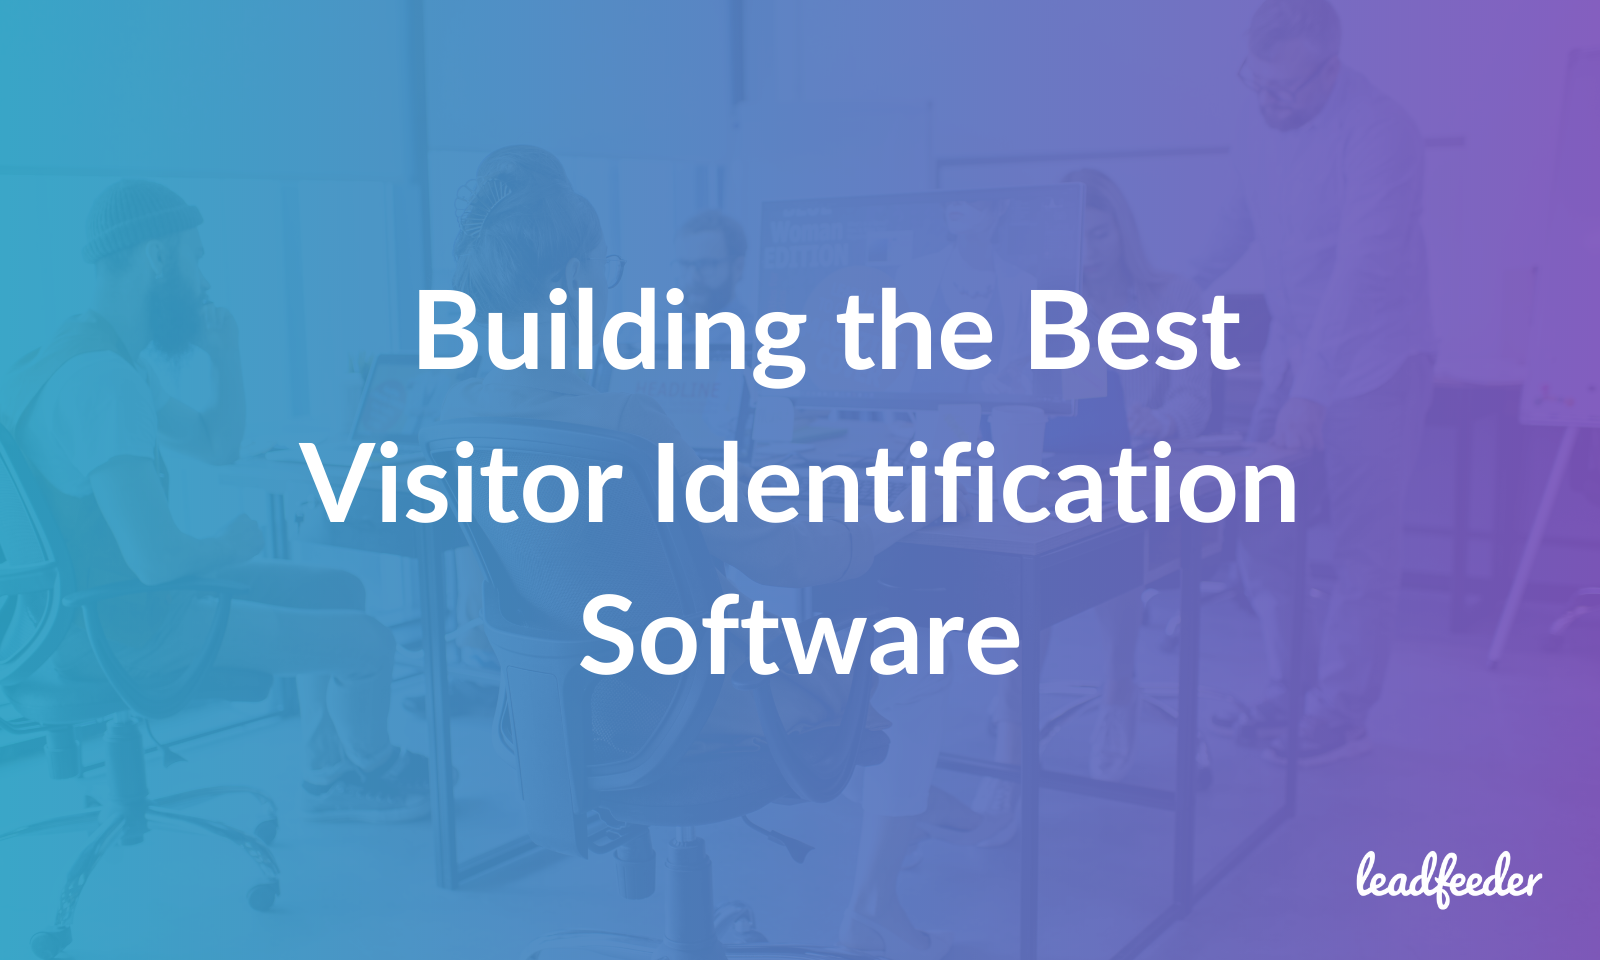 best visitor identification software header